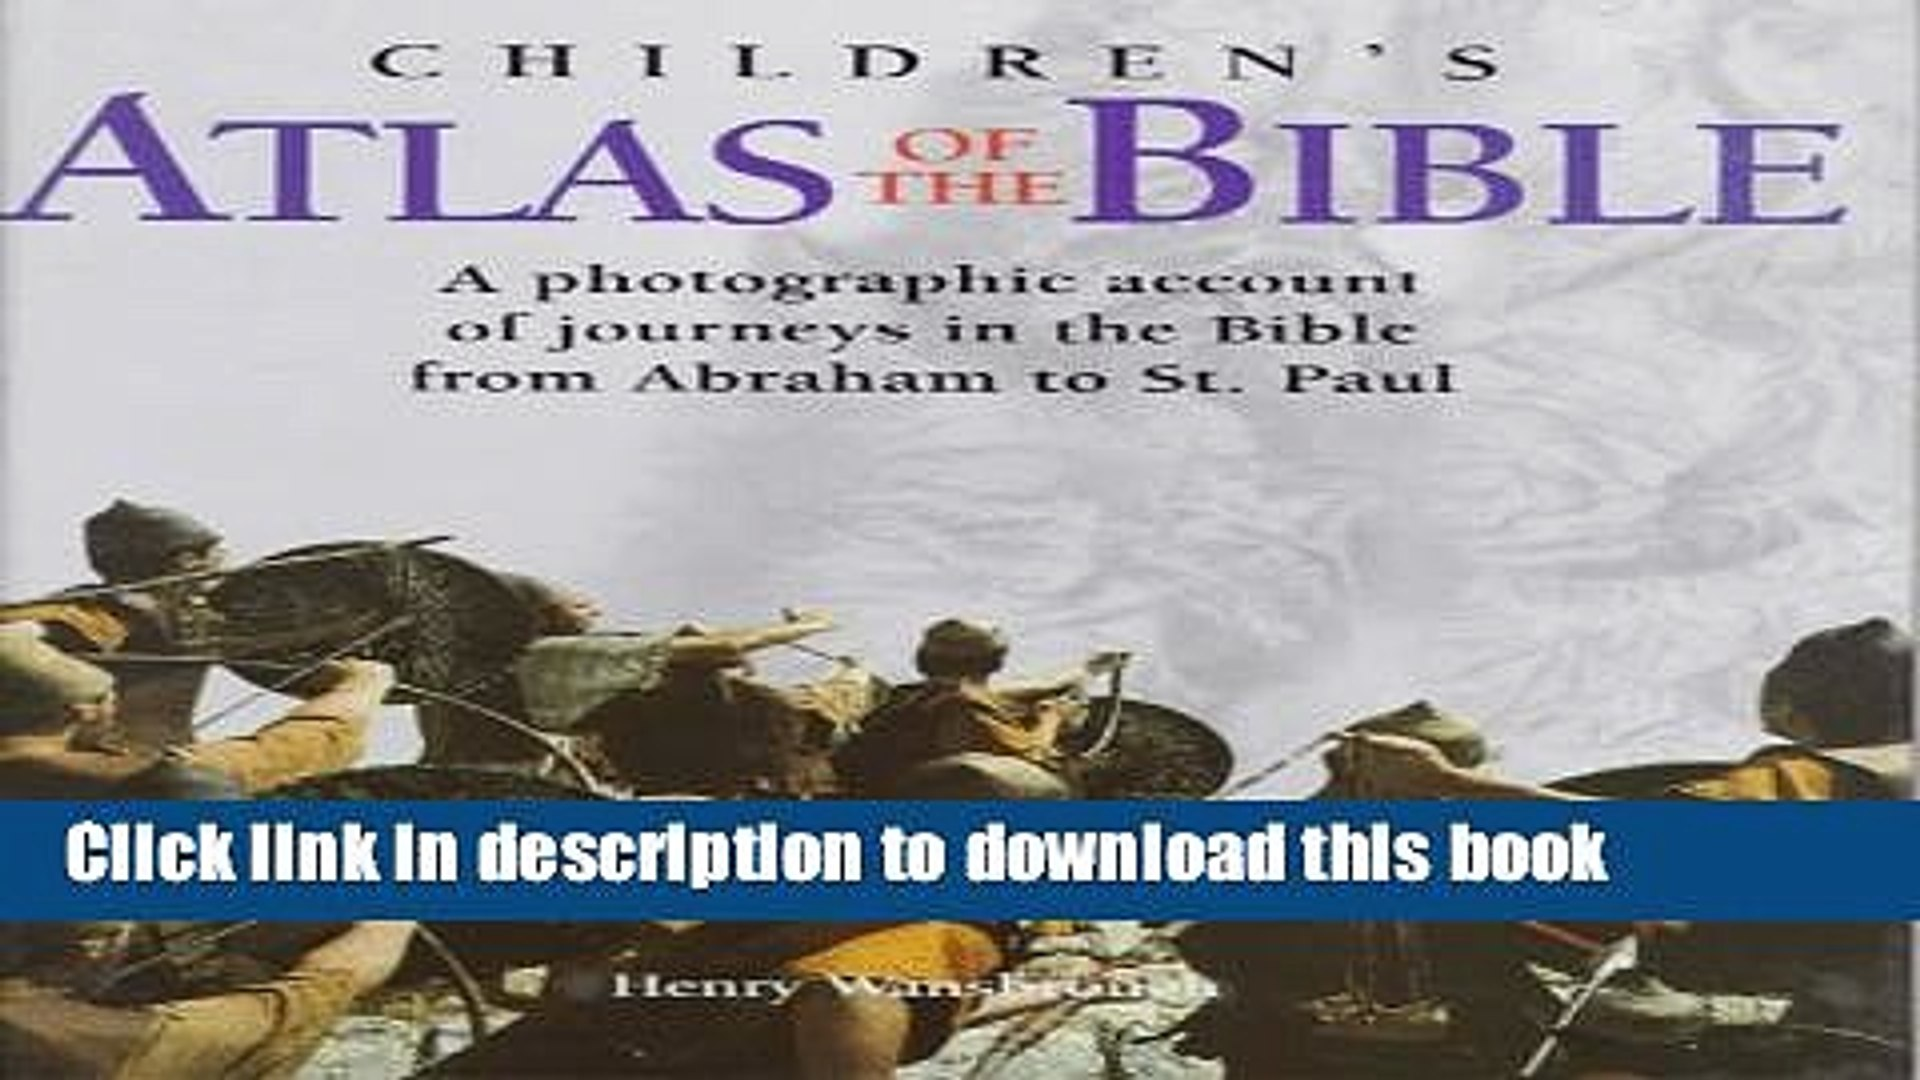 Read Children s Atlas of the Bible: A Photographic Account of the Journeys in the Bible from